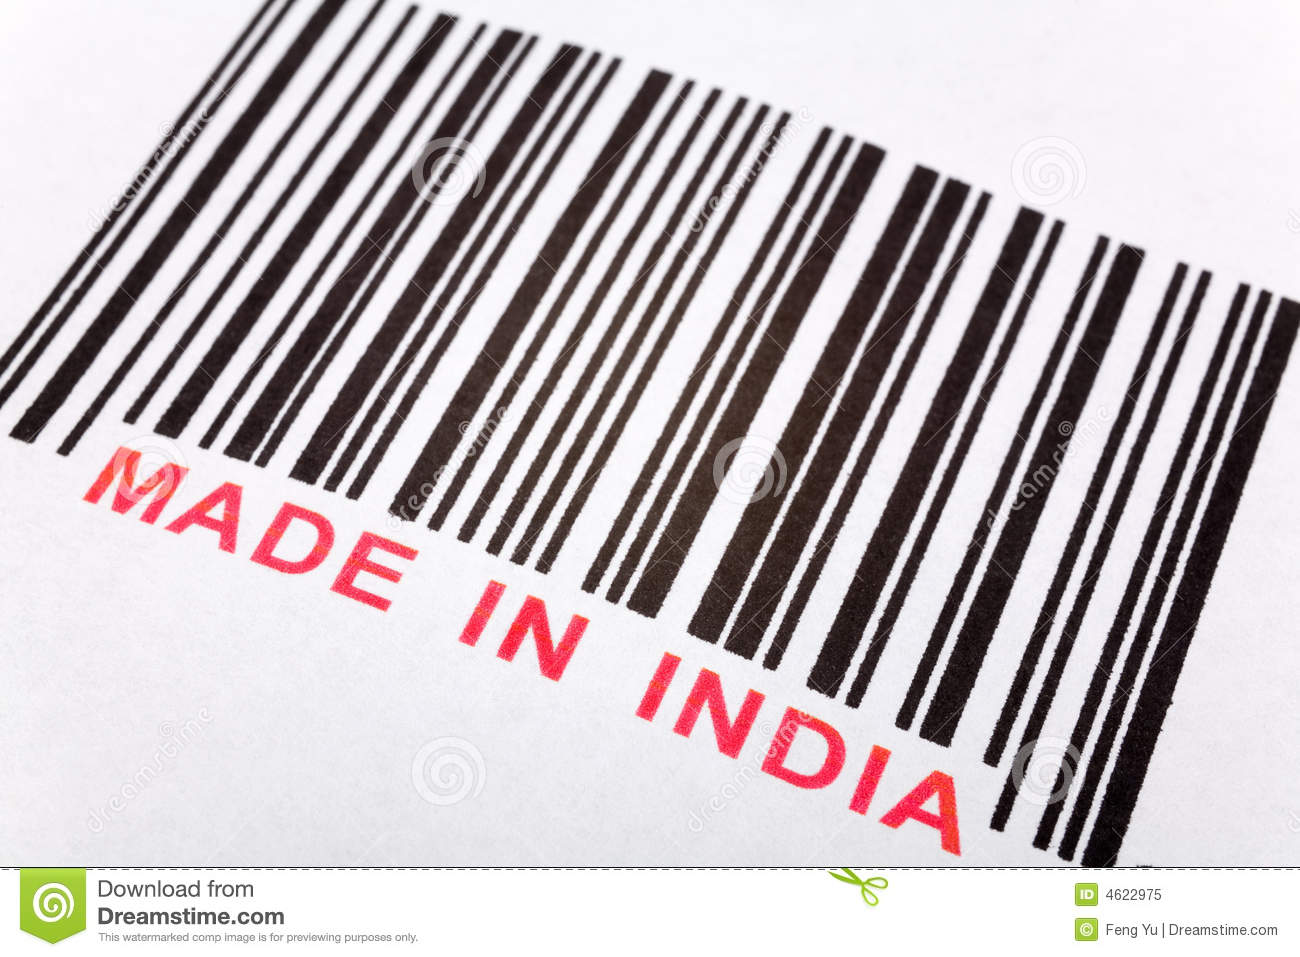 made in india stock image image of factory barcode india 4622975. Black Bedroom Furniture Sets. Home Design Ideas